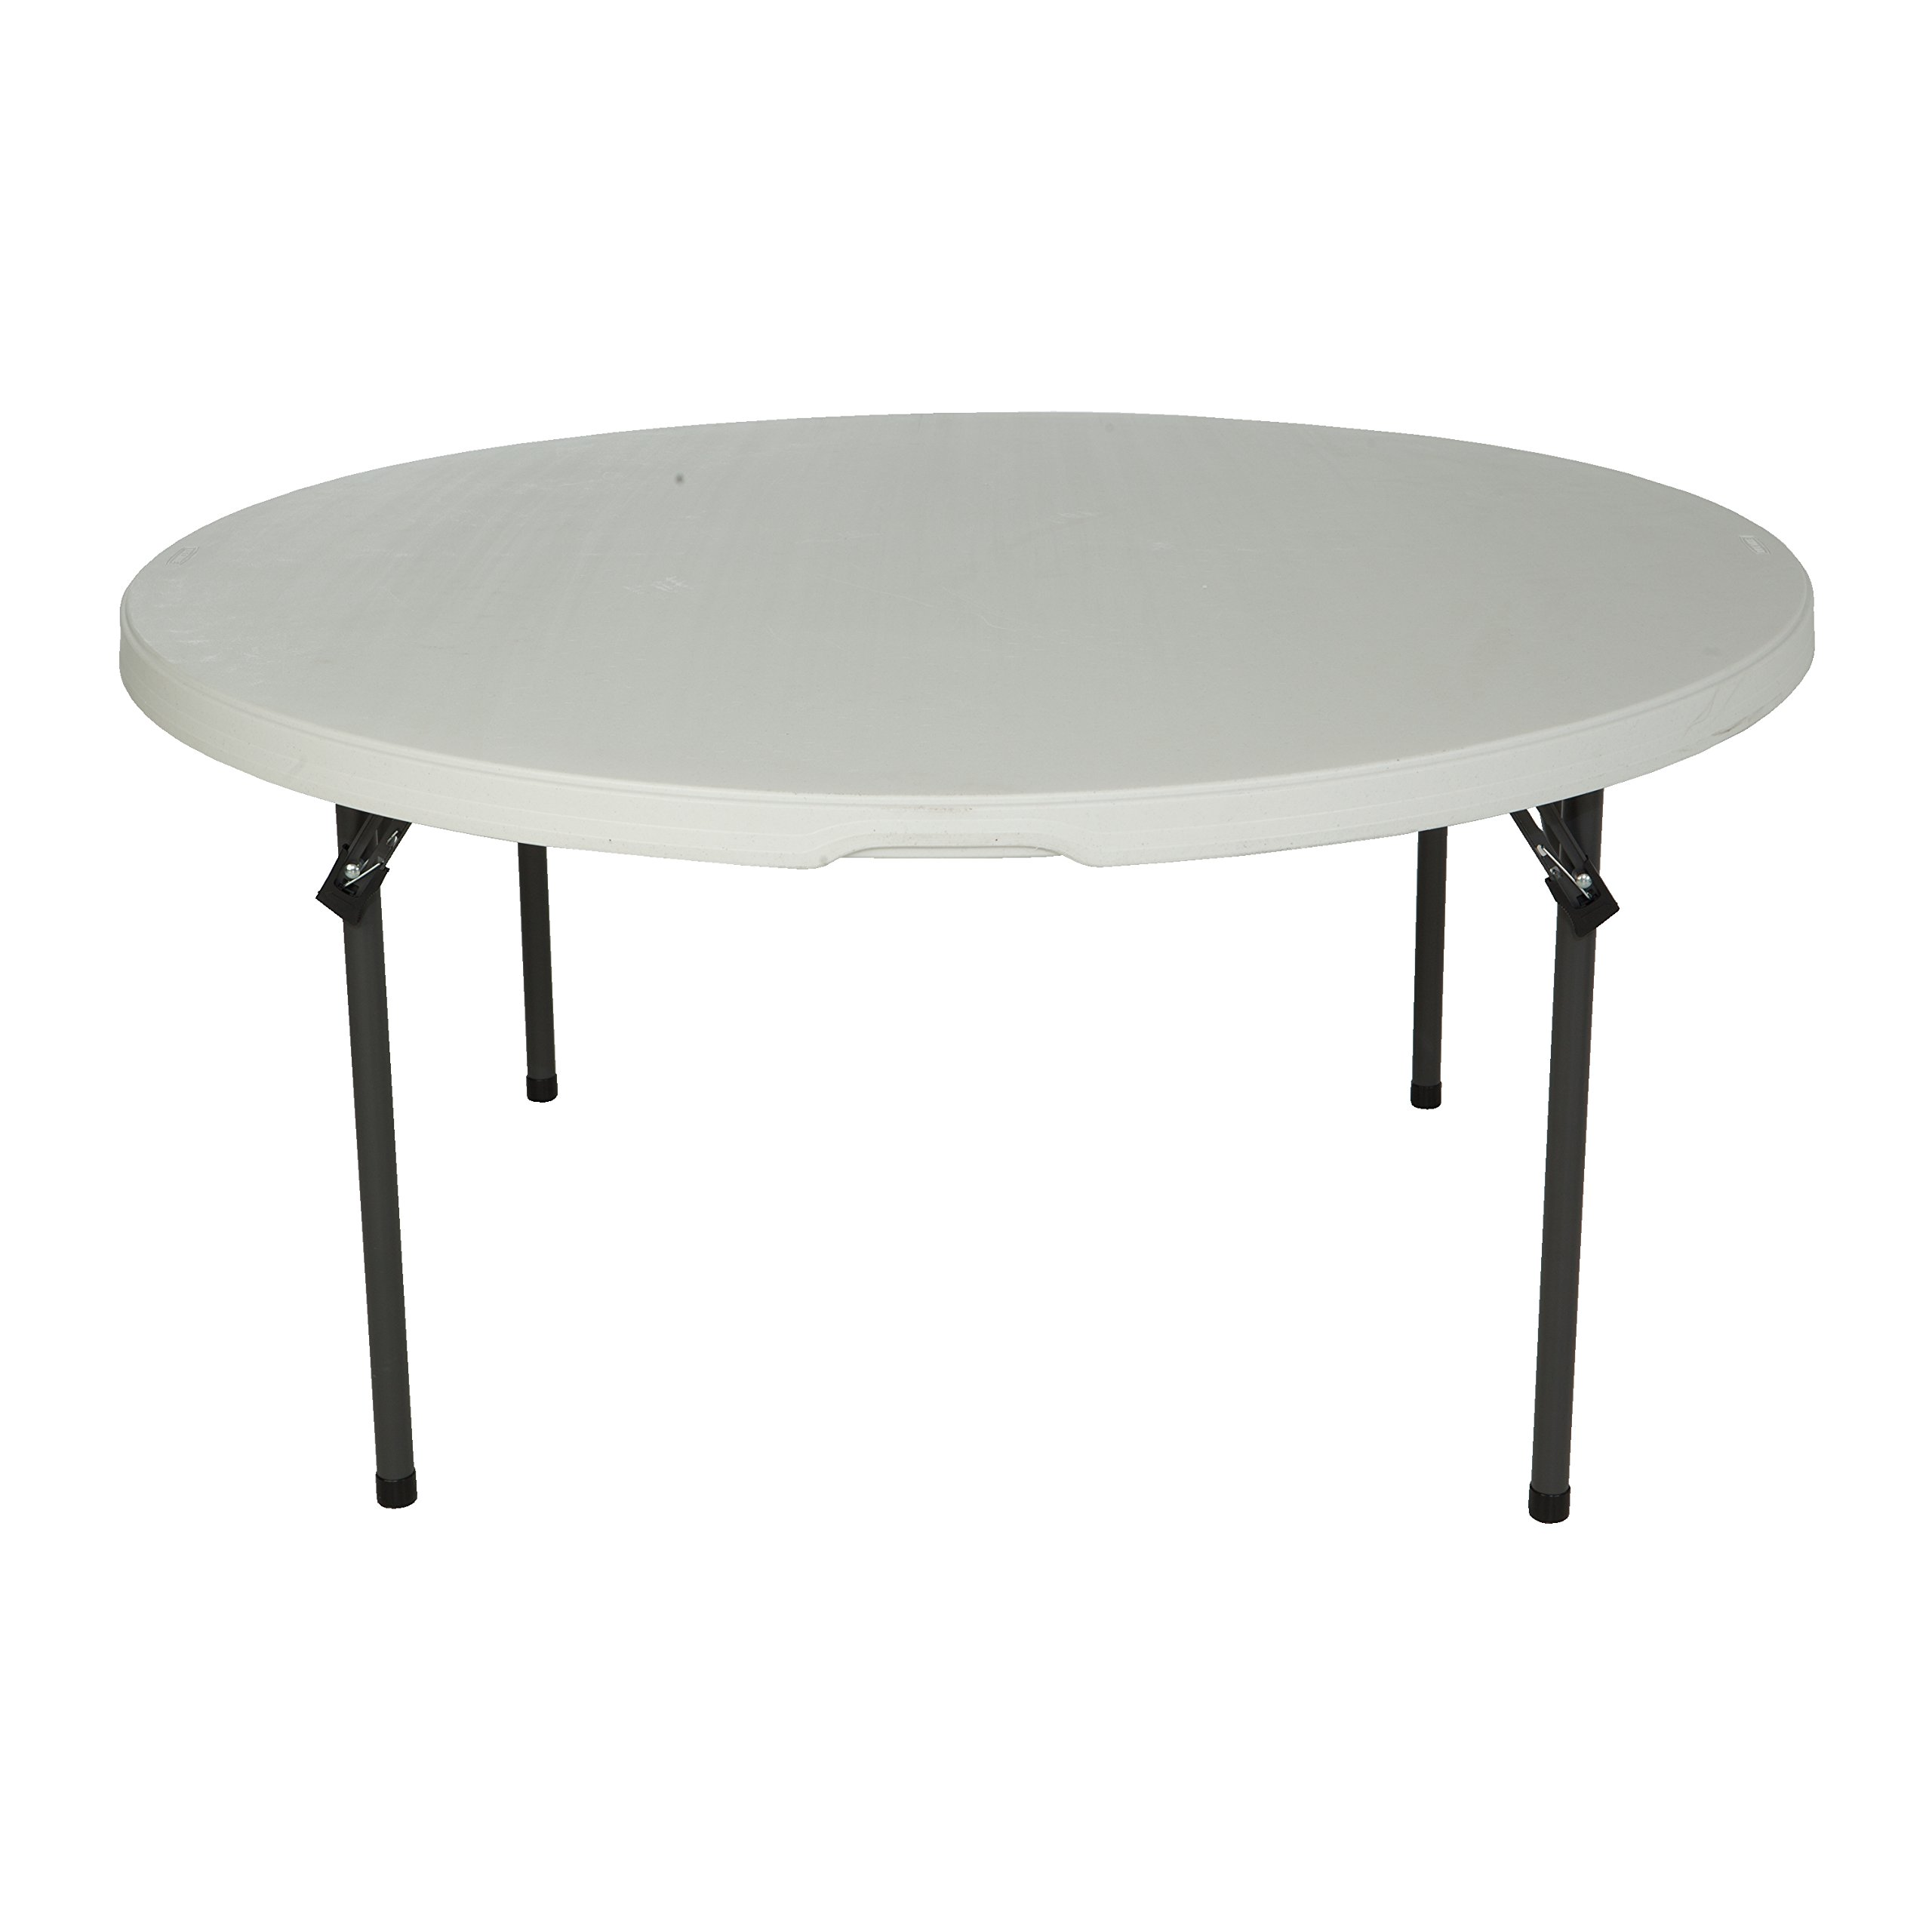 Lifetime 280301 Commercial Folding Round Table, 5 Feet, White